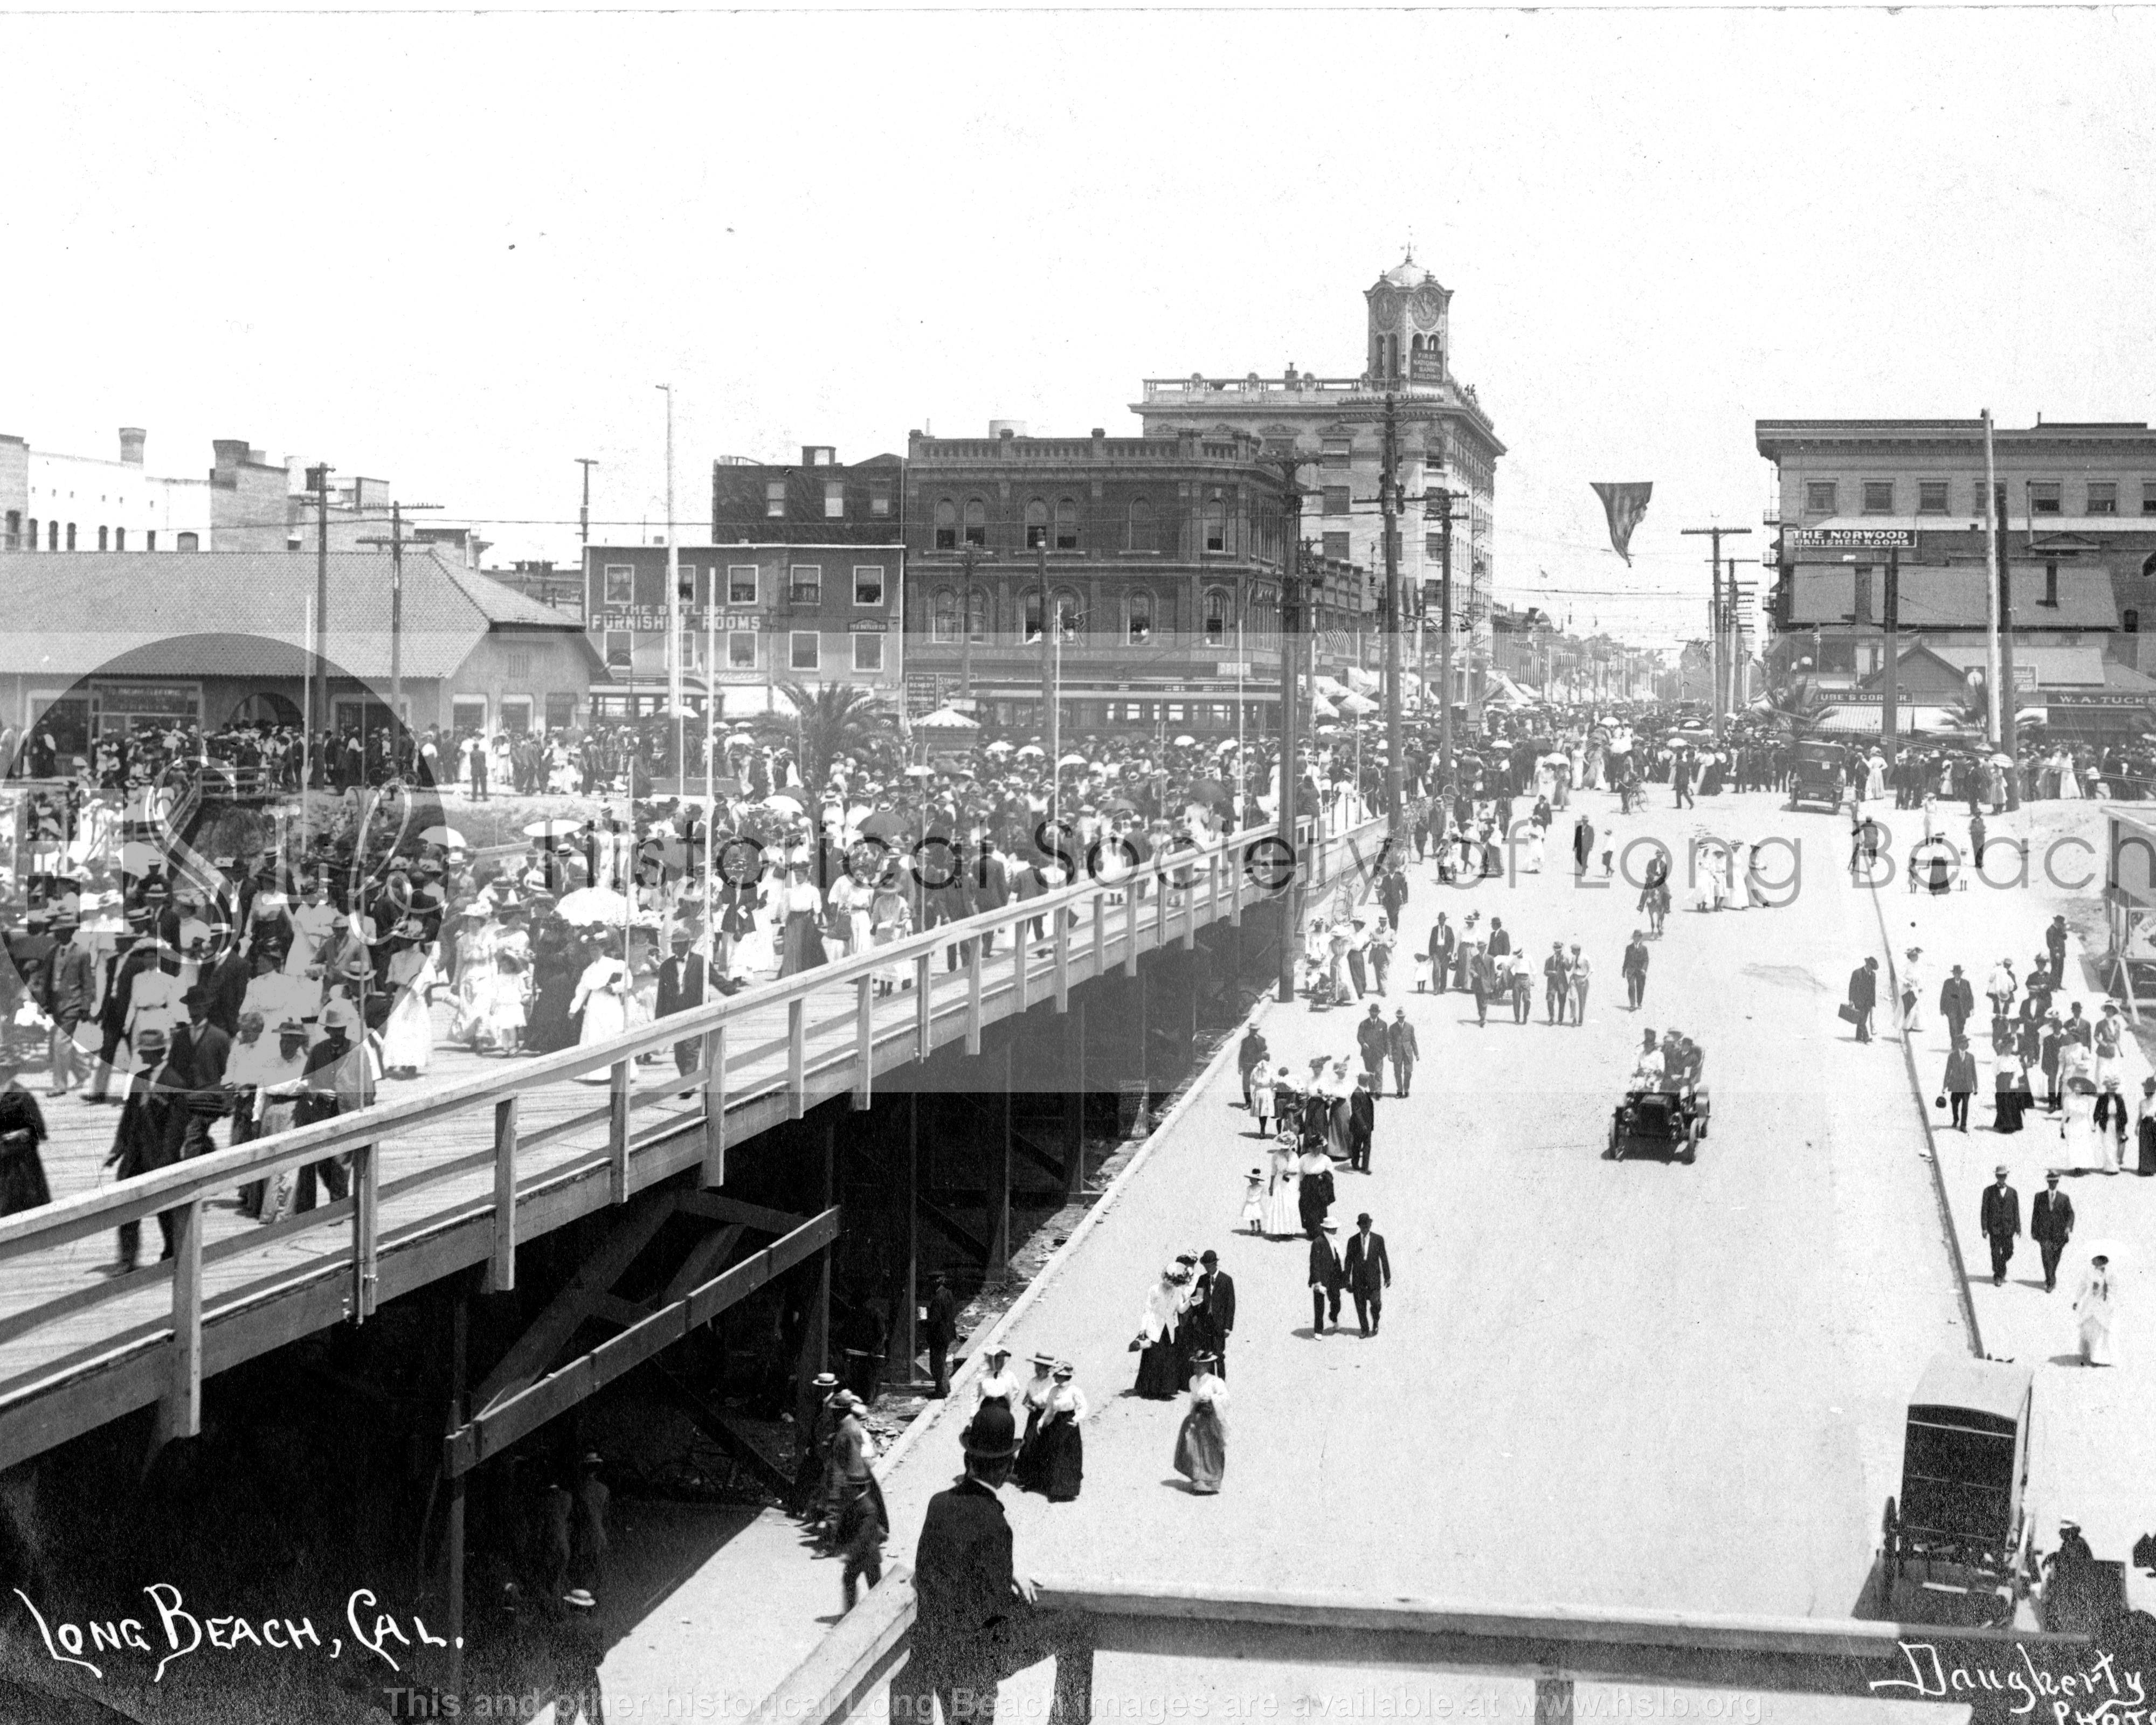 Pine Ave. Pier entrance, 1910 vintage photo